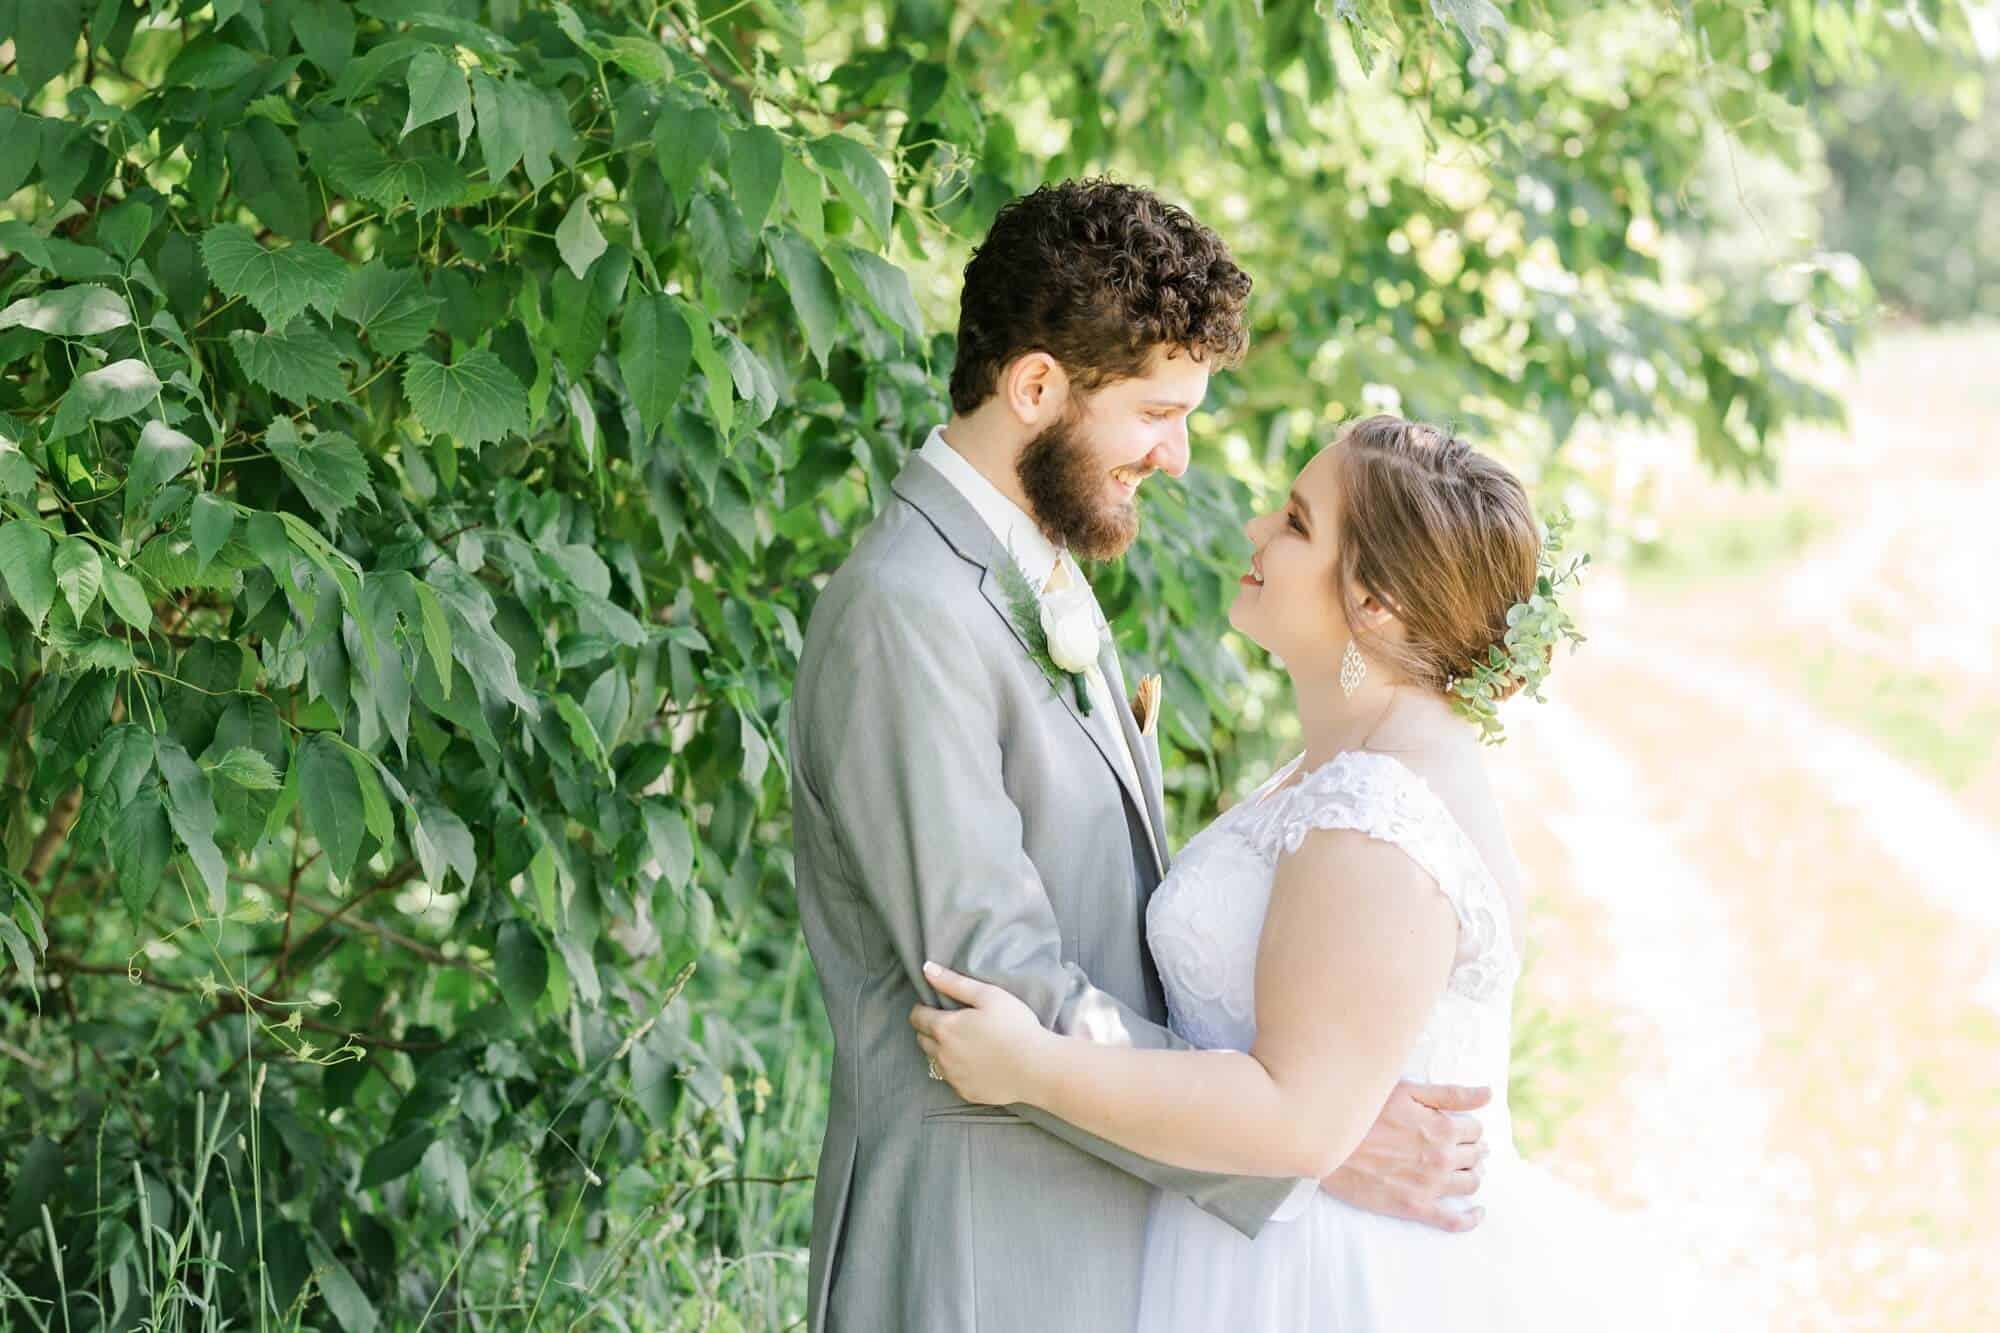 wedding portraits gorman nature center mansfield ohio photographer tiffany murray